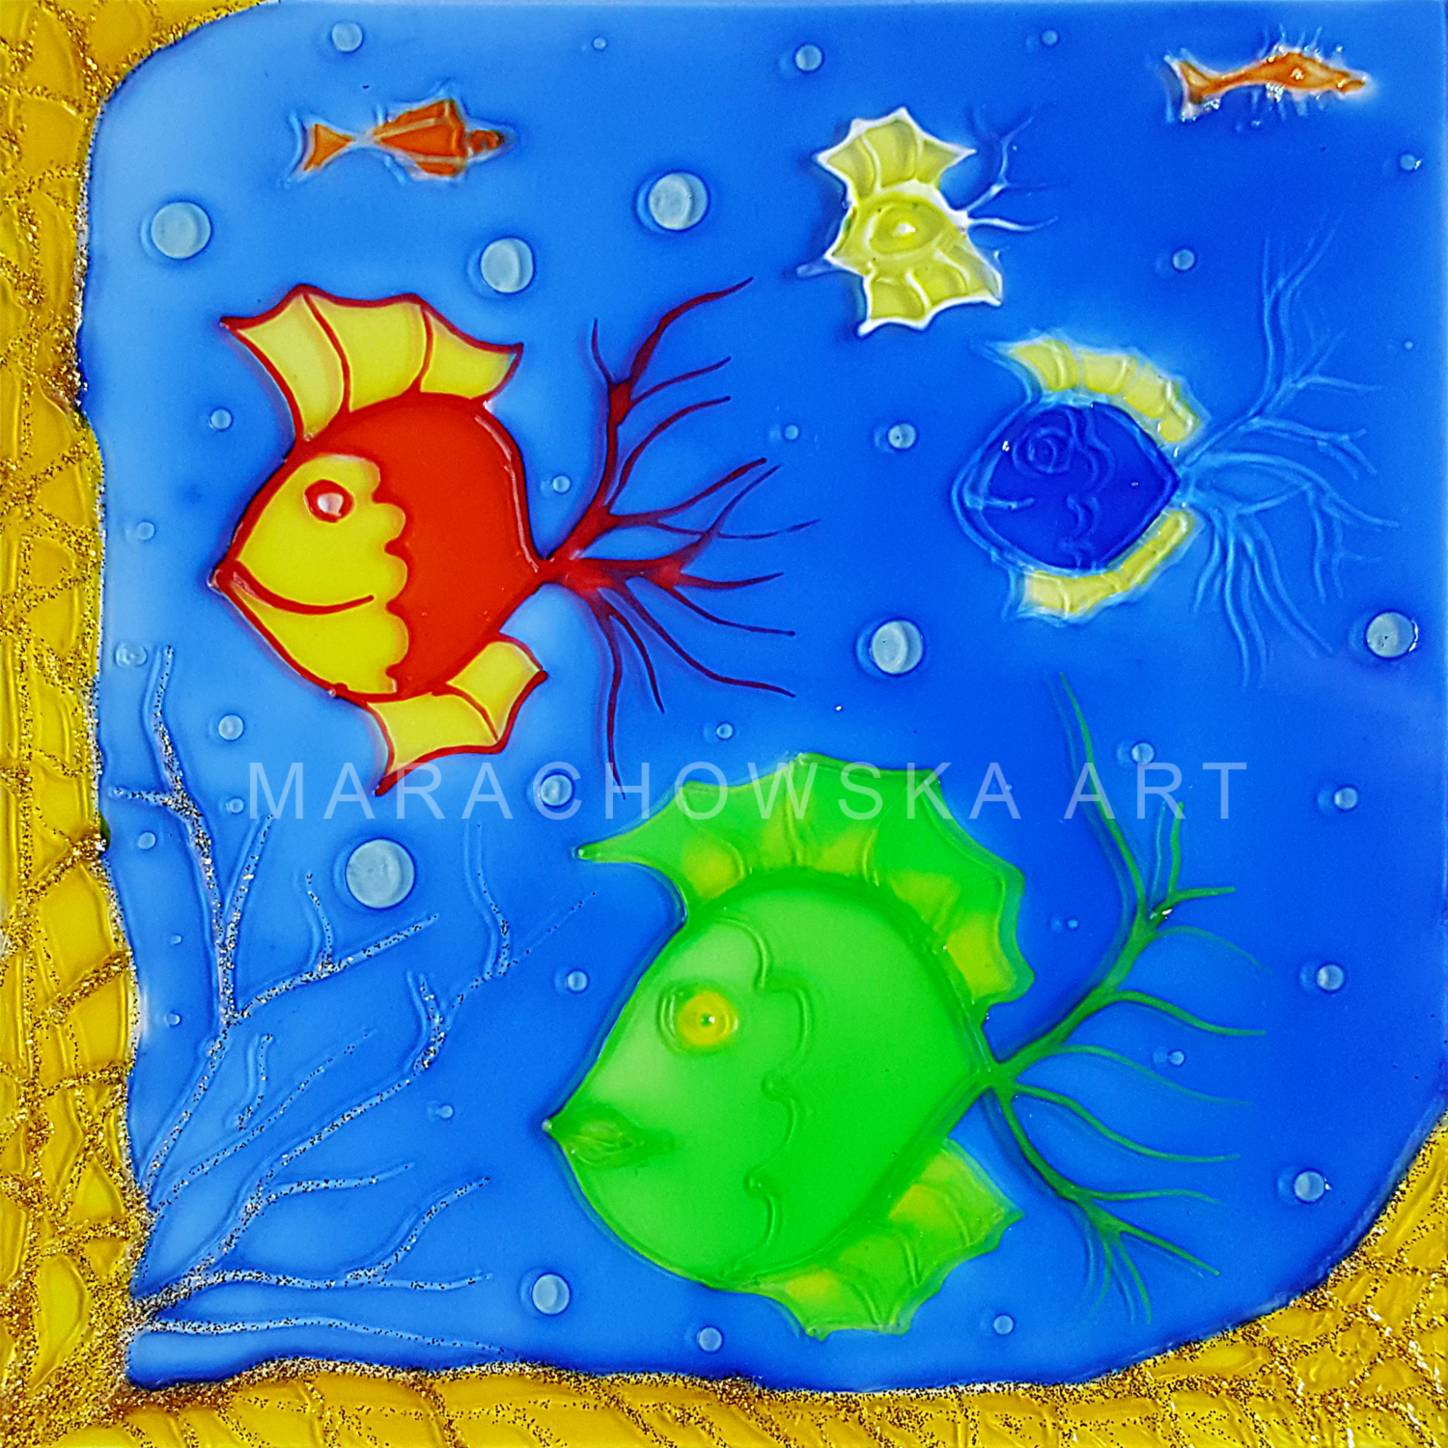 fishes-marachowskaart-painting-glass-art-2018